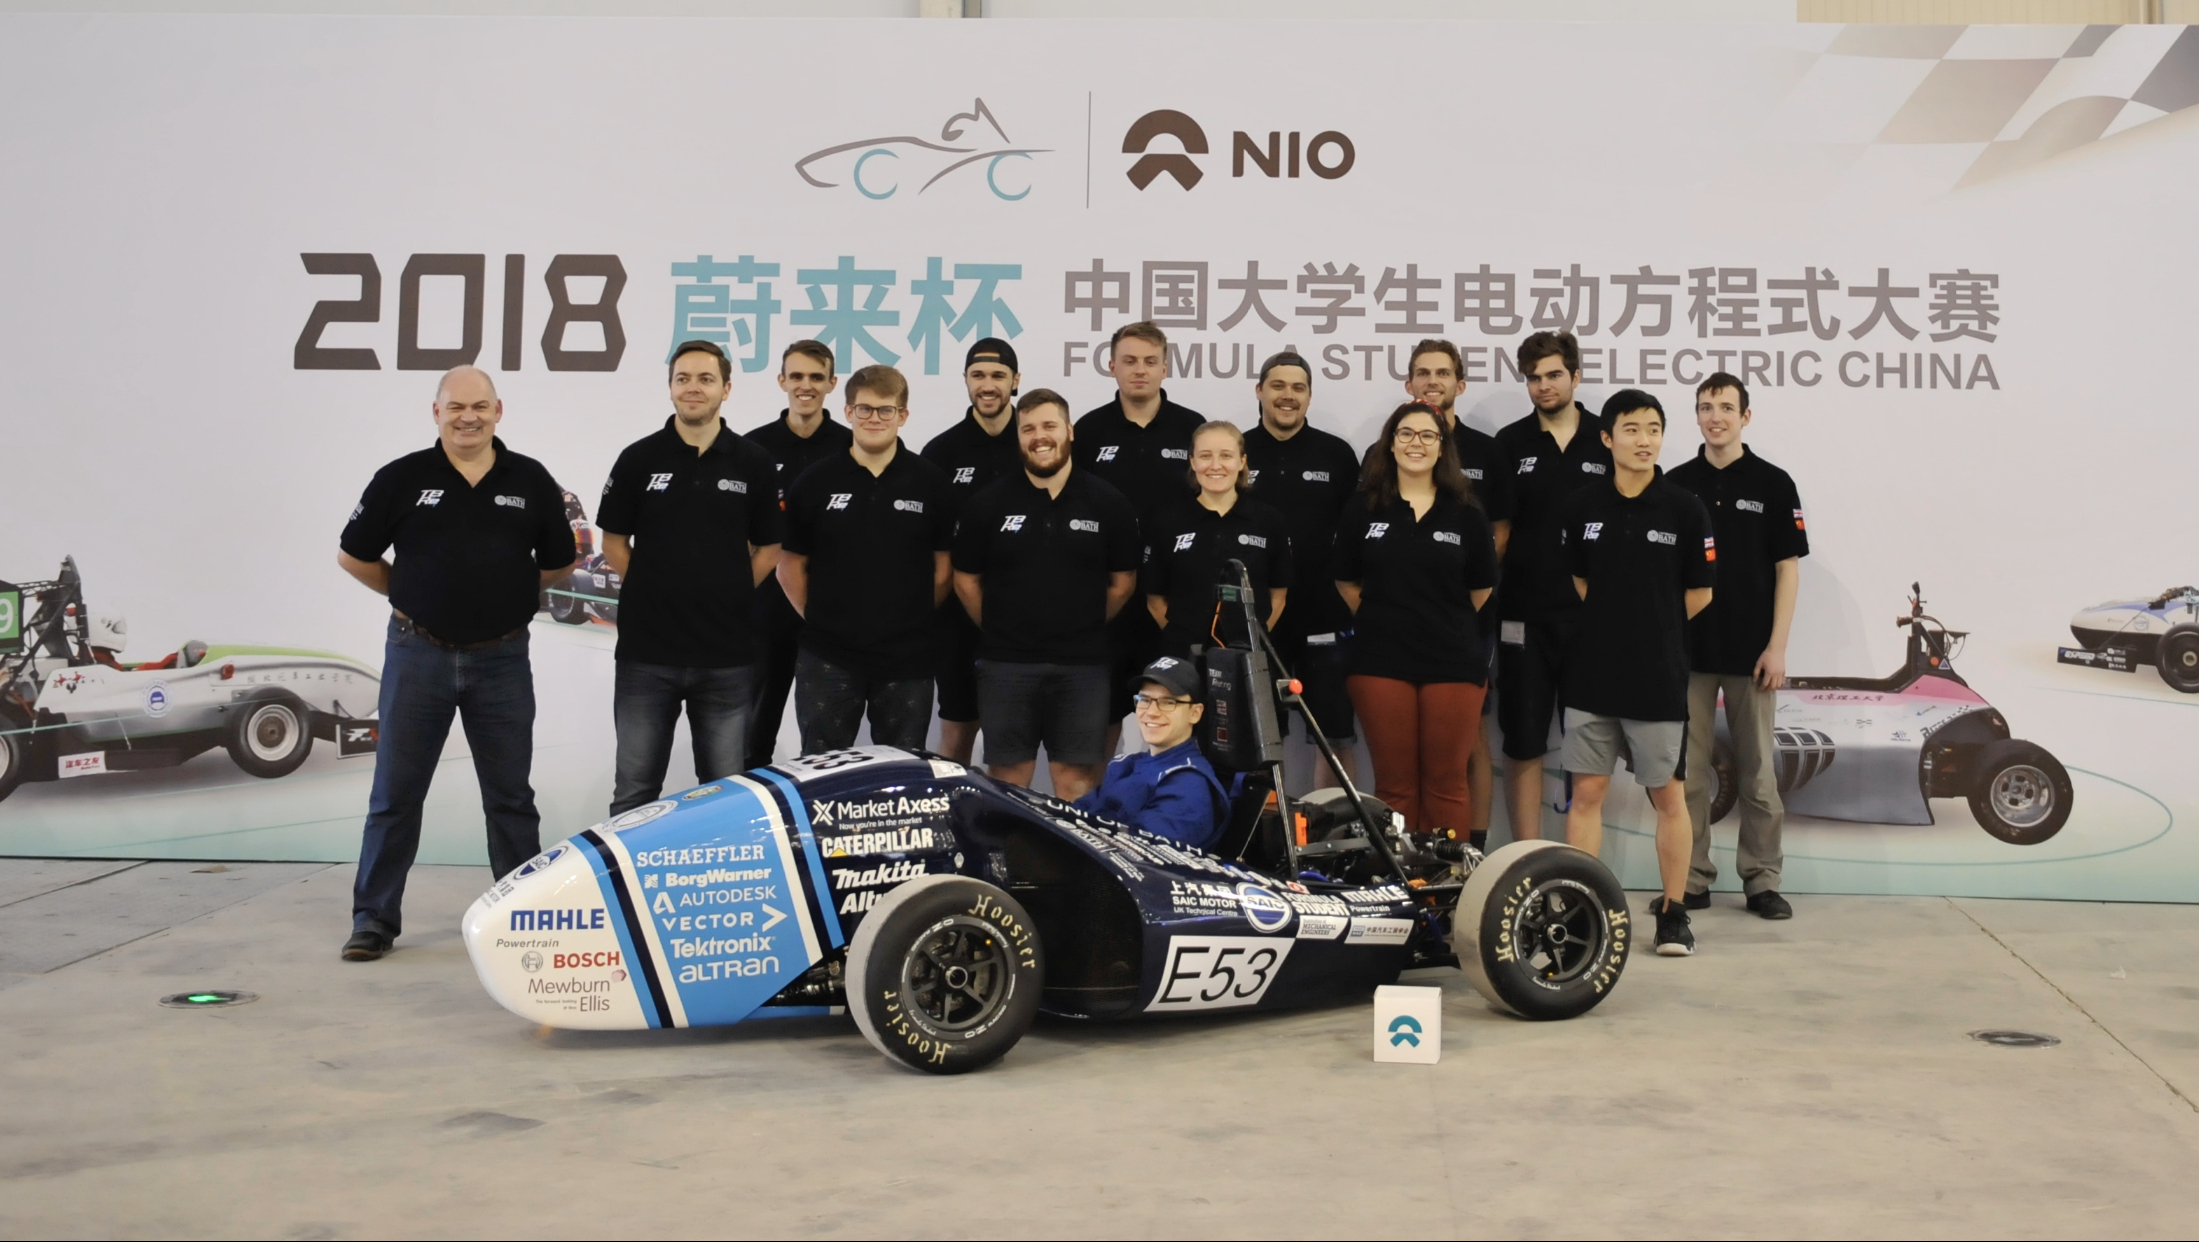 TBRe arrived in China as not only the top UK electric team and sole UK representatives, but also the first time a UK team has competed at this event.